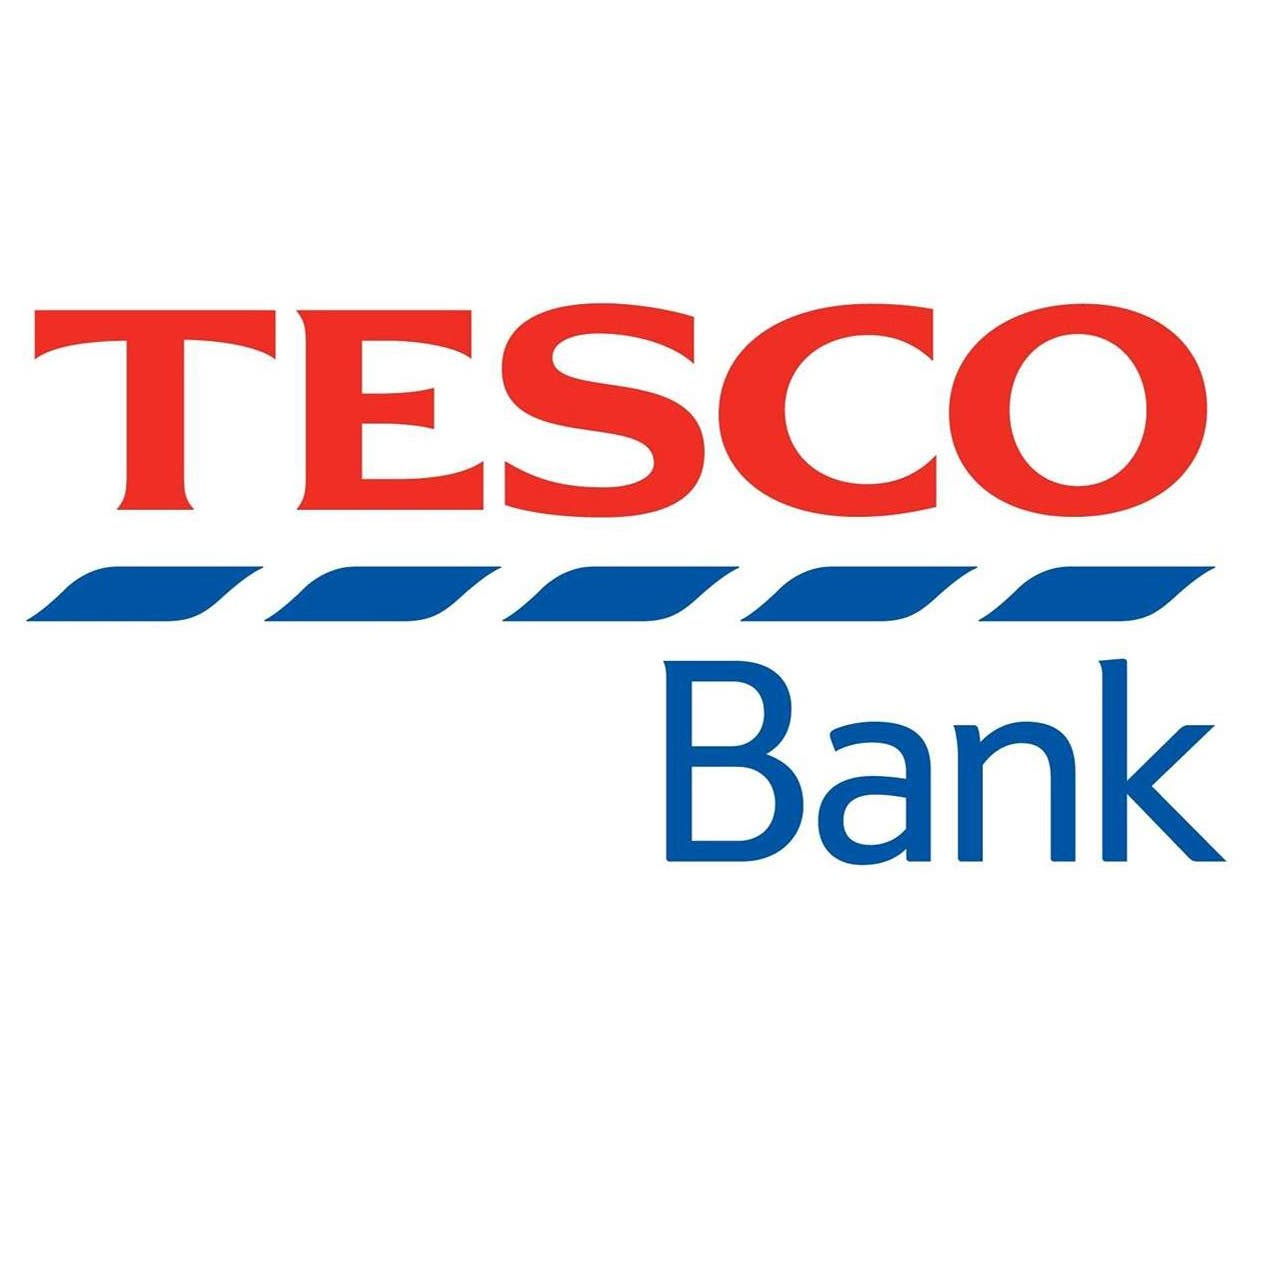 Tesco bank news cards accounts mortgages bankrate uk tesco was founded by grocer jack cohen a simple market stallholder who began selling tesco tea in 1924 using the initials tes from the tea supplier colourmoves